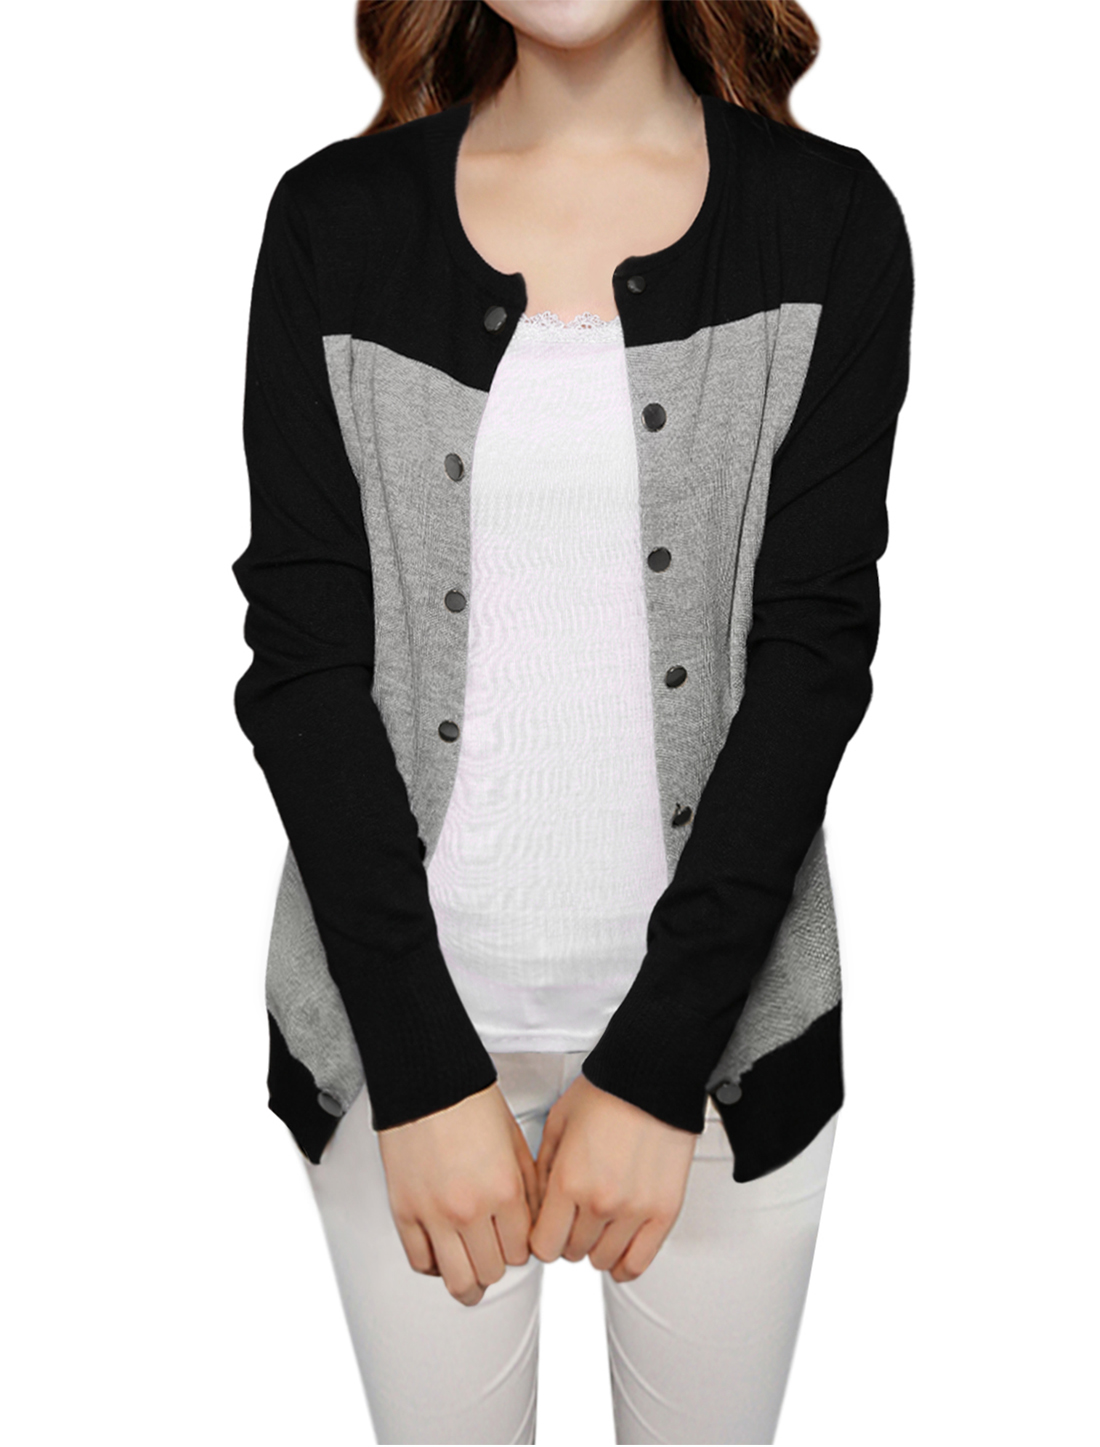 Women Color Block Buttons Decor Front Casual Knit Cardigan Black Light Gray S